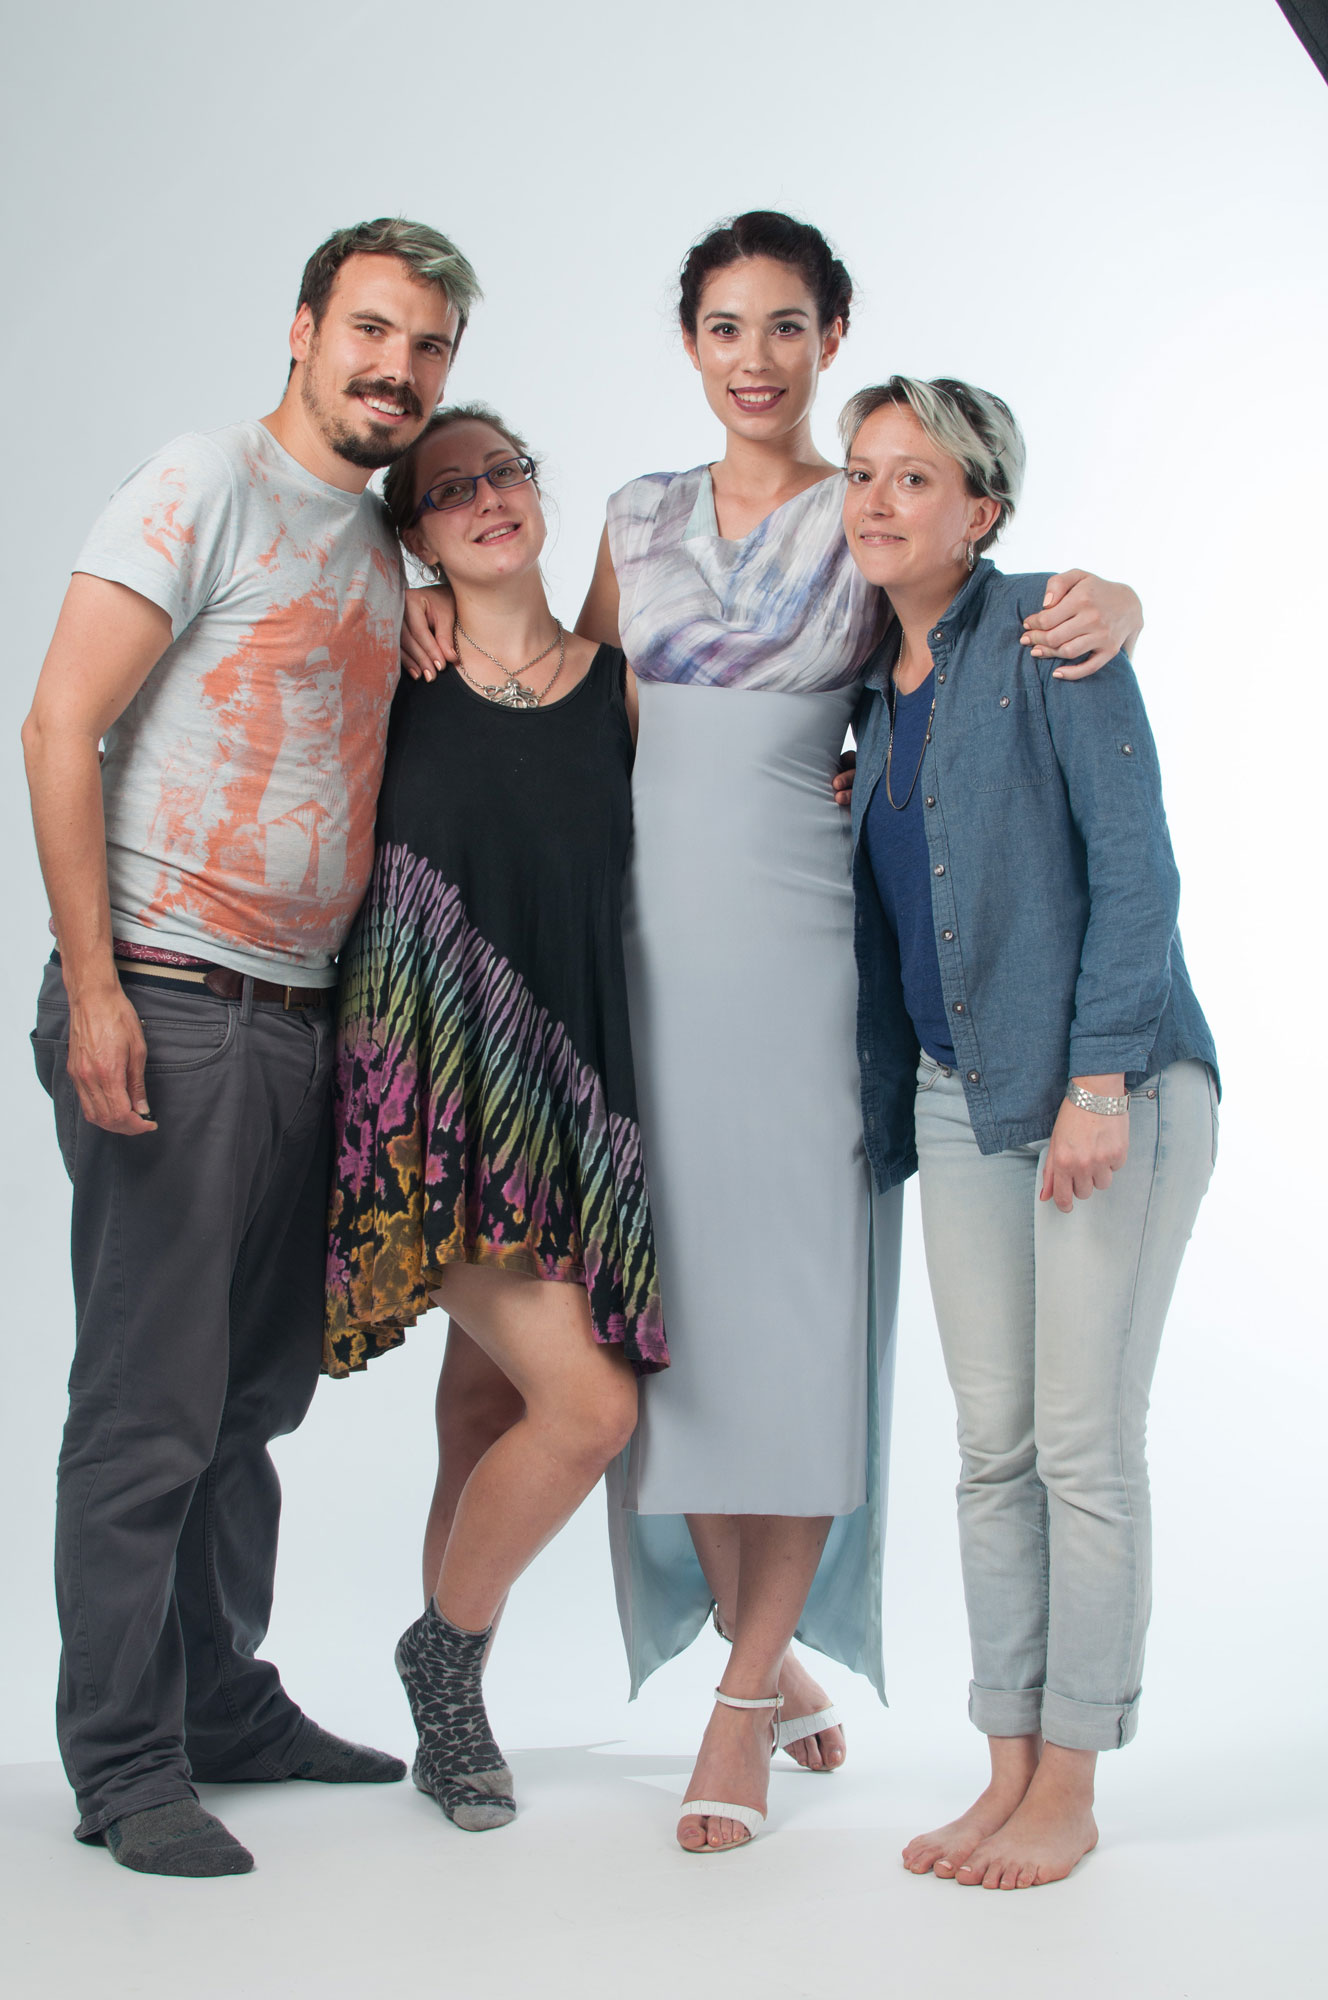 A group shot of me, the designers and model after we finished the shoot